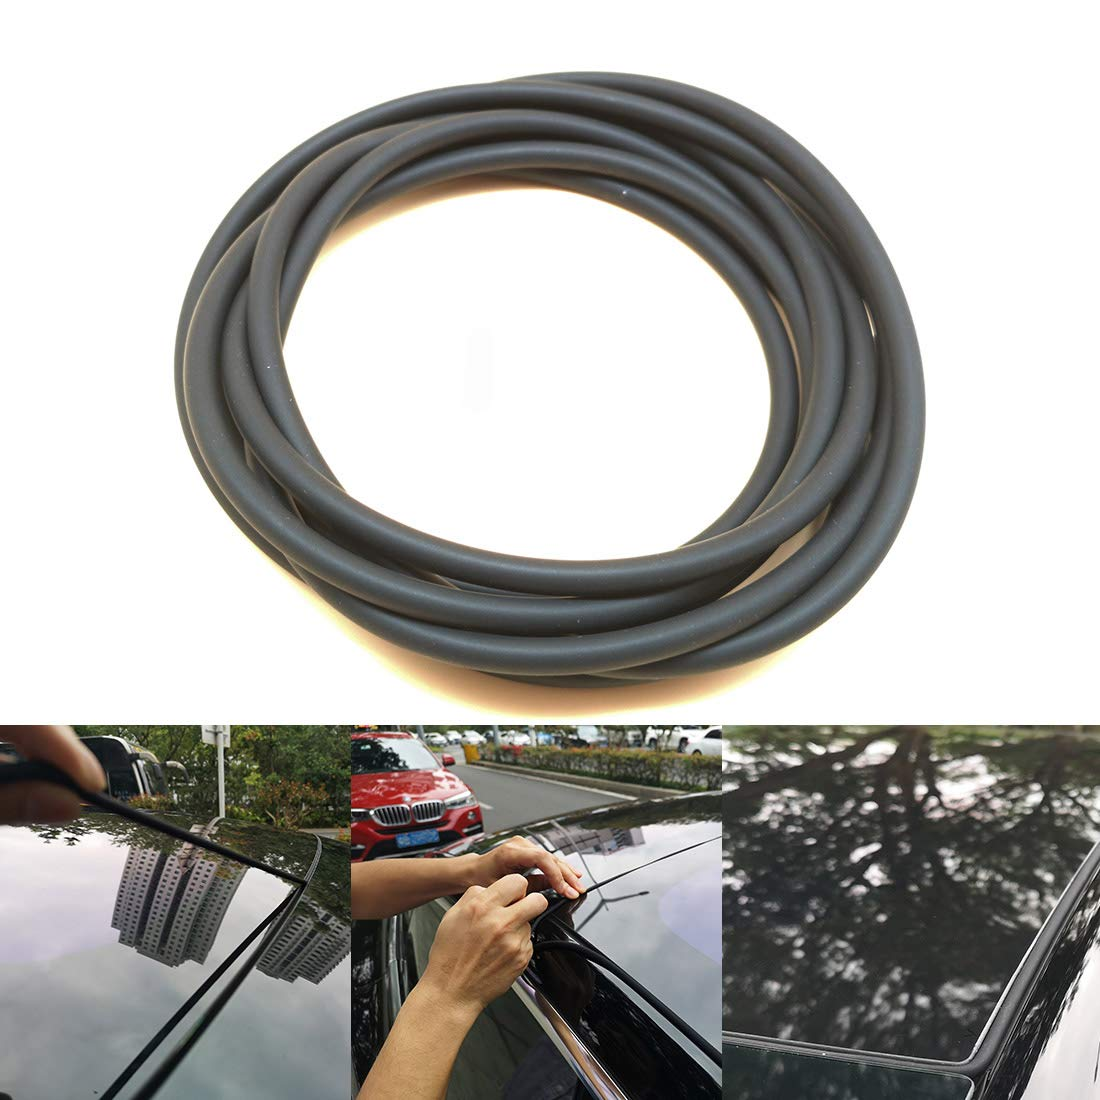 UTSAUTO Windshield /& Roof Wind Guard Noise Lowering Dampening Reduction Kit Fits for Tesla Model 3 100/% Silica Gel Quiet Seal Strip Kit Wind Noise Reduction Kit for Tesla Model 3